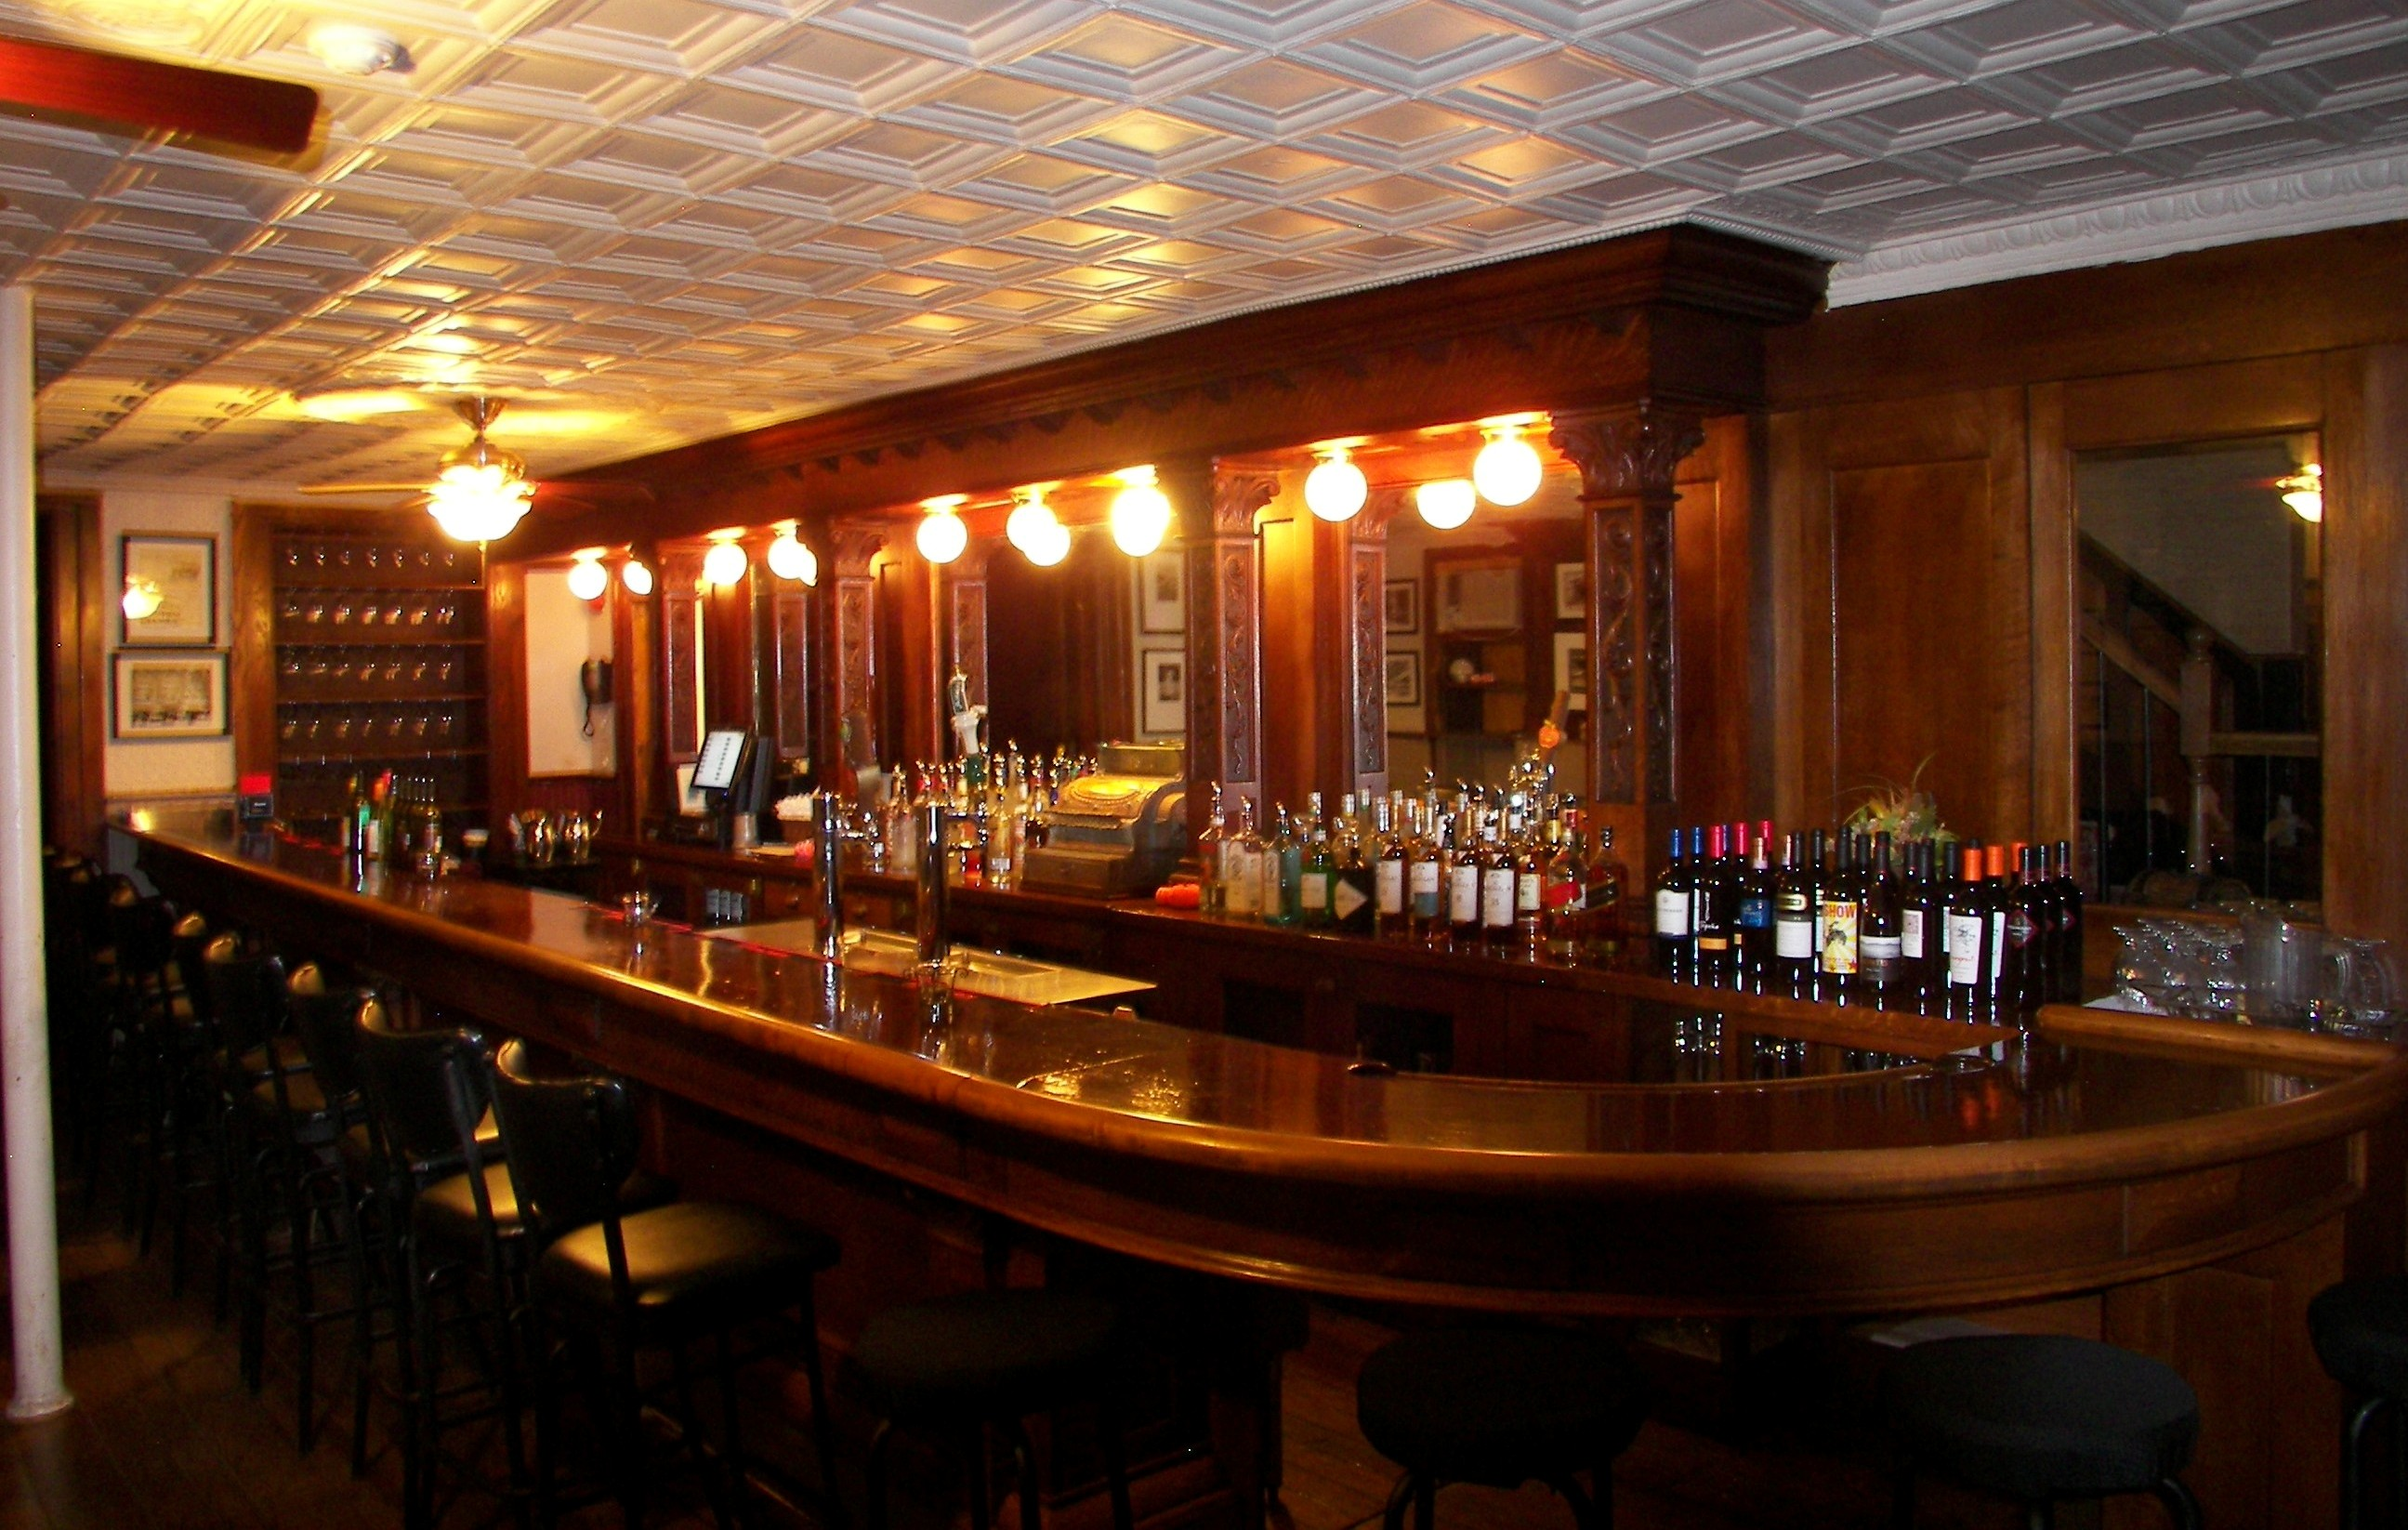 The Main Bar at the National Hotel